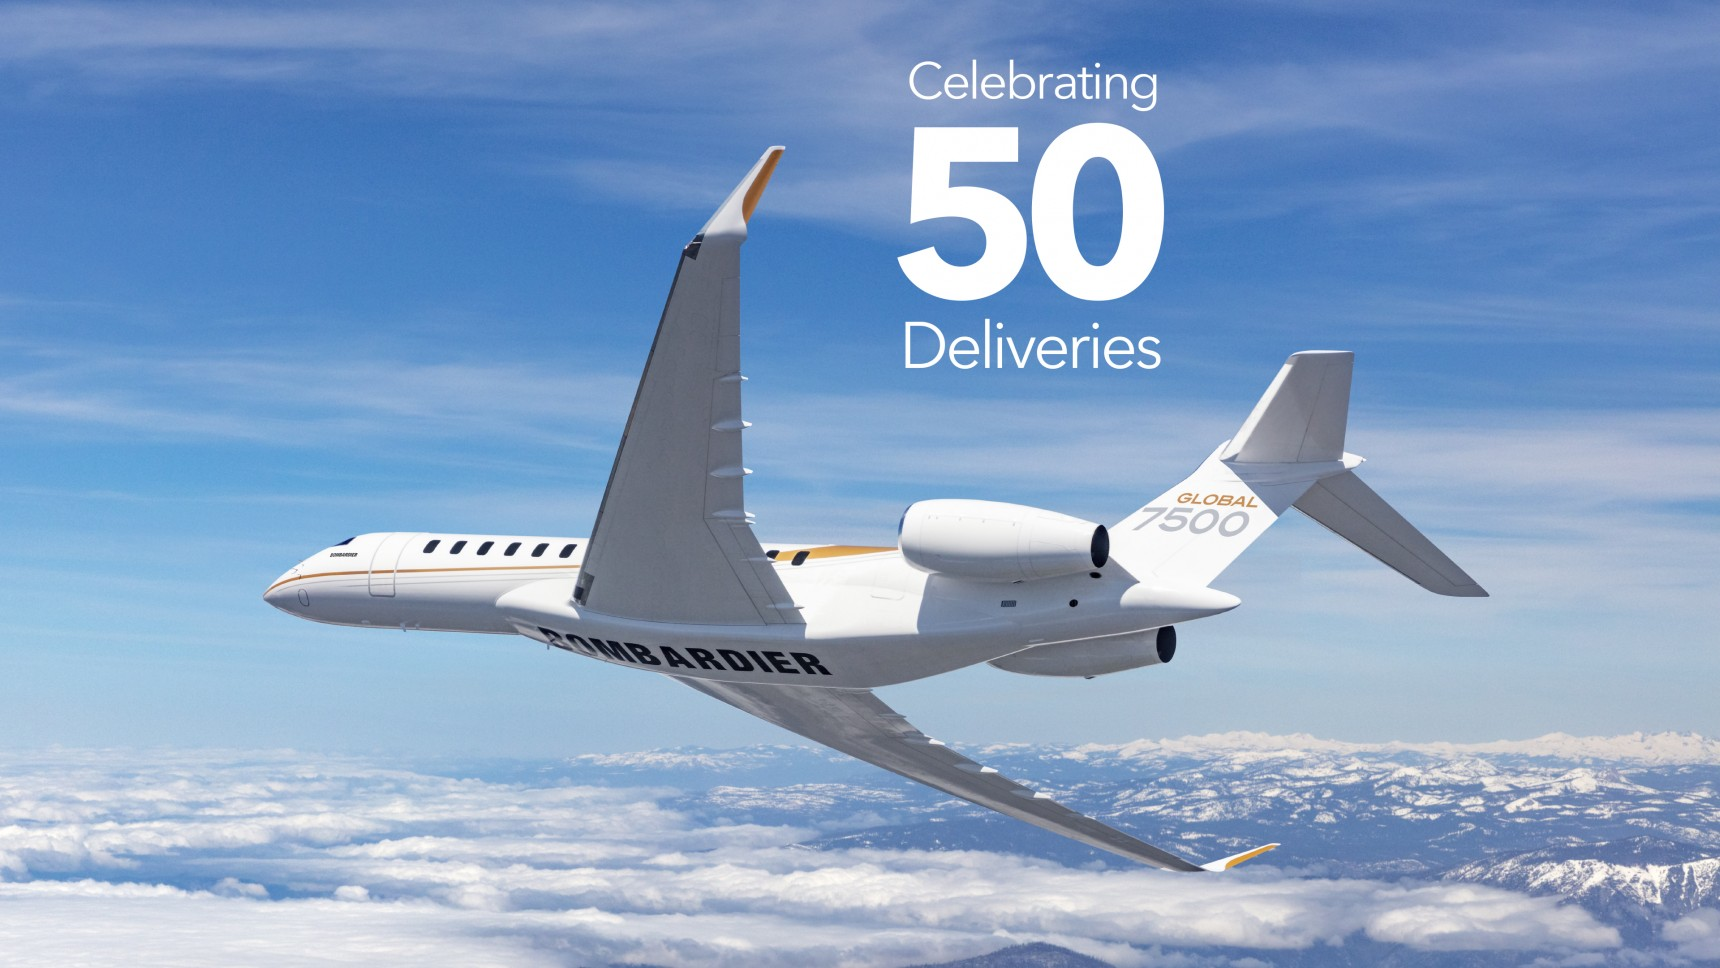 Bombardier Marks 50th Global 7500 Aircraft Delivery Milestone